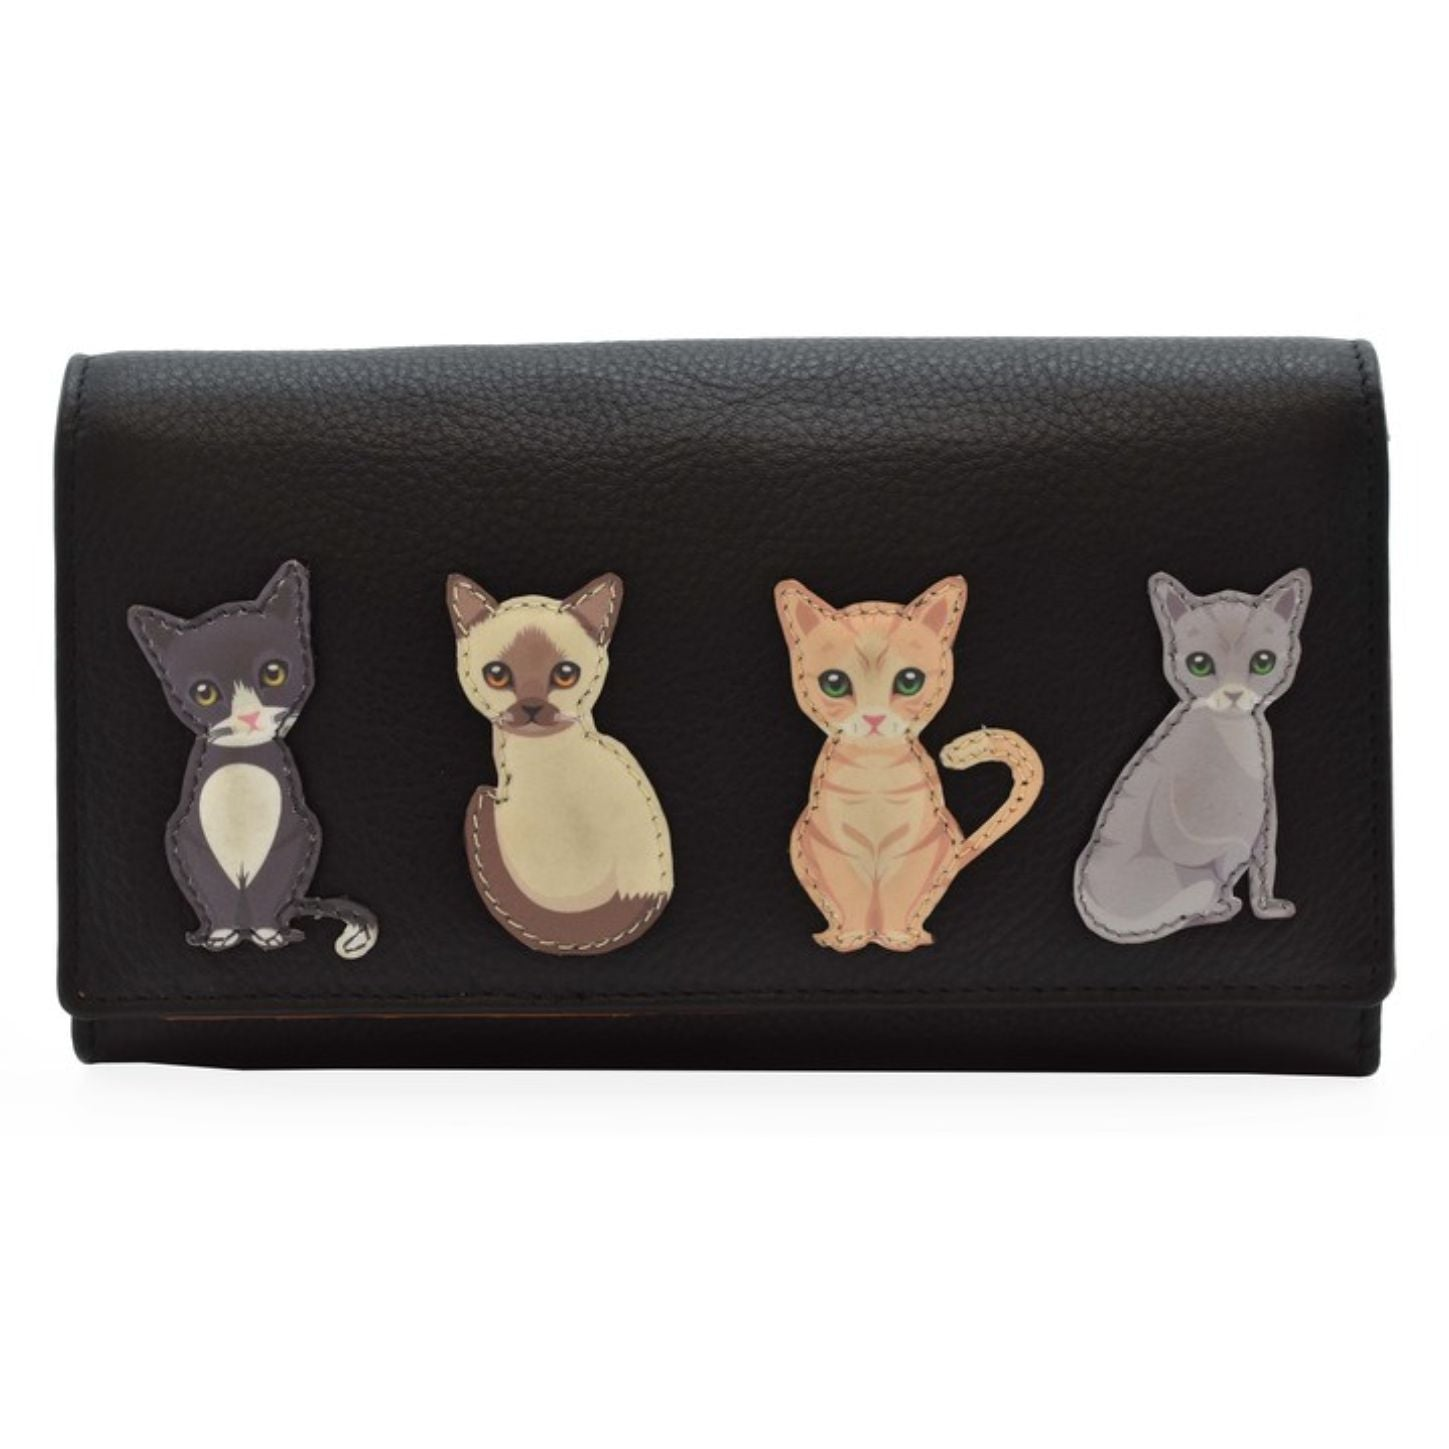 Best Friends Feline Purse, Black